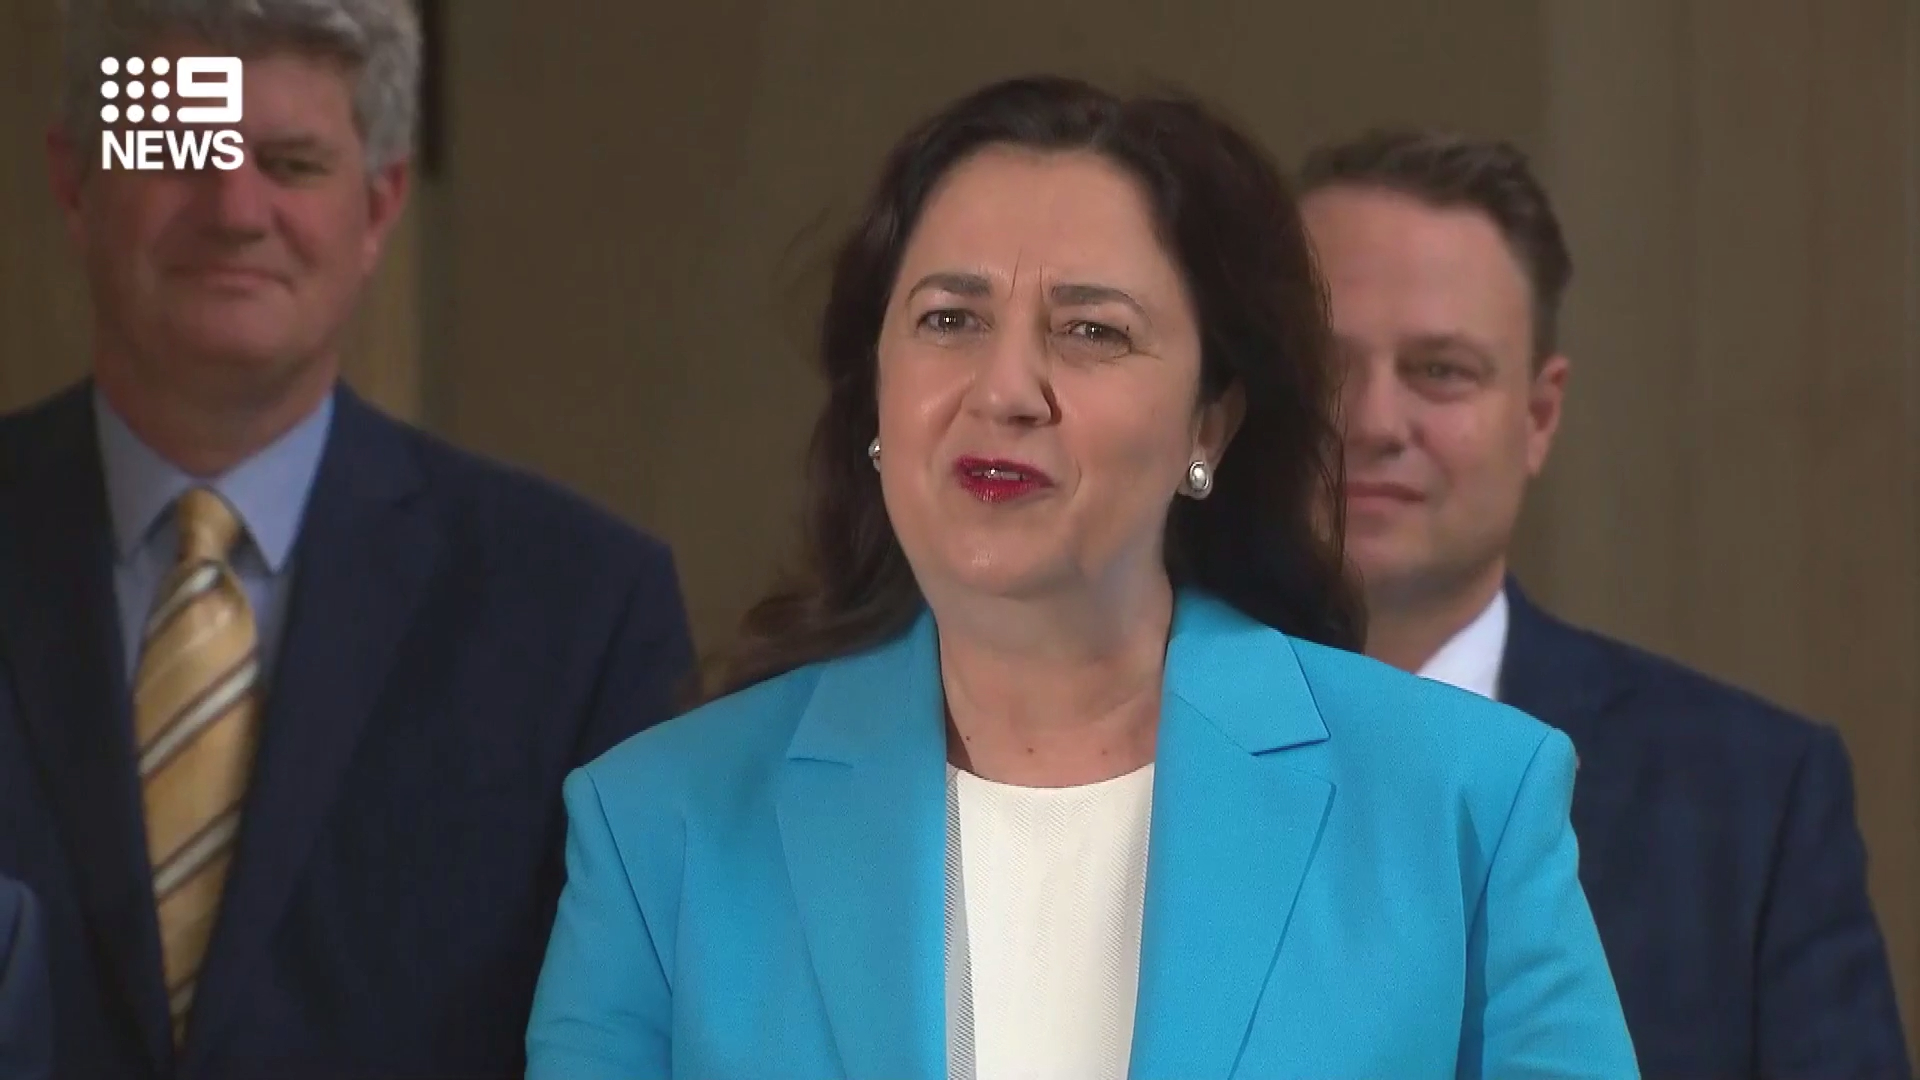 Queensland Premier calls potential Brisbane Olympics a 'game changer'